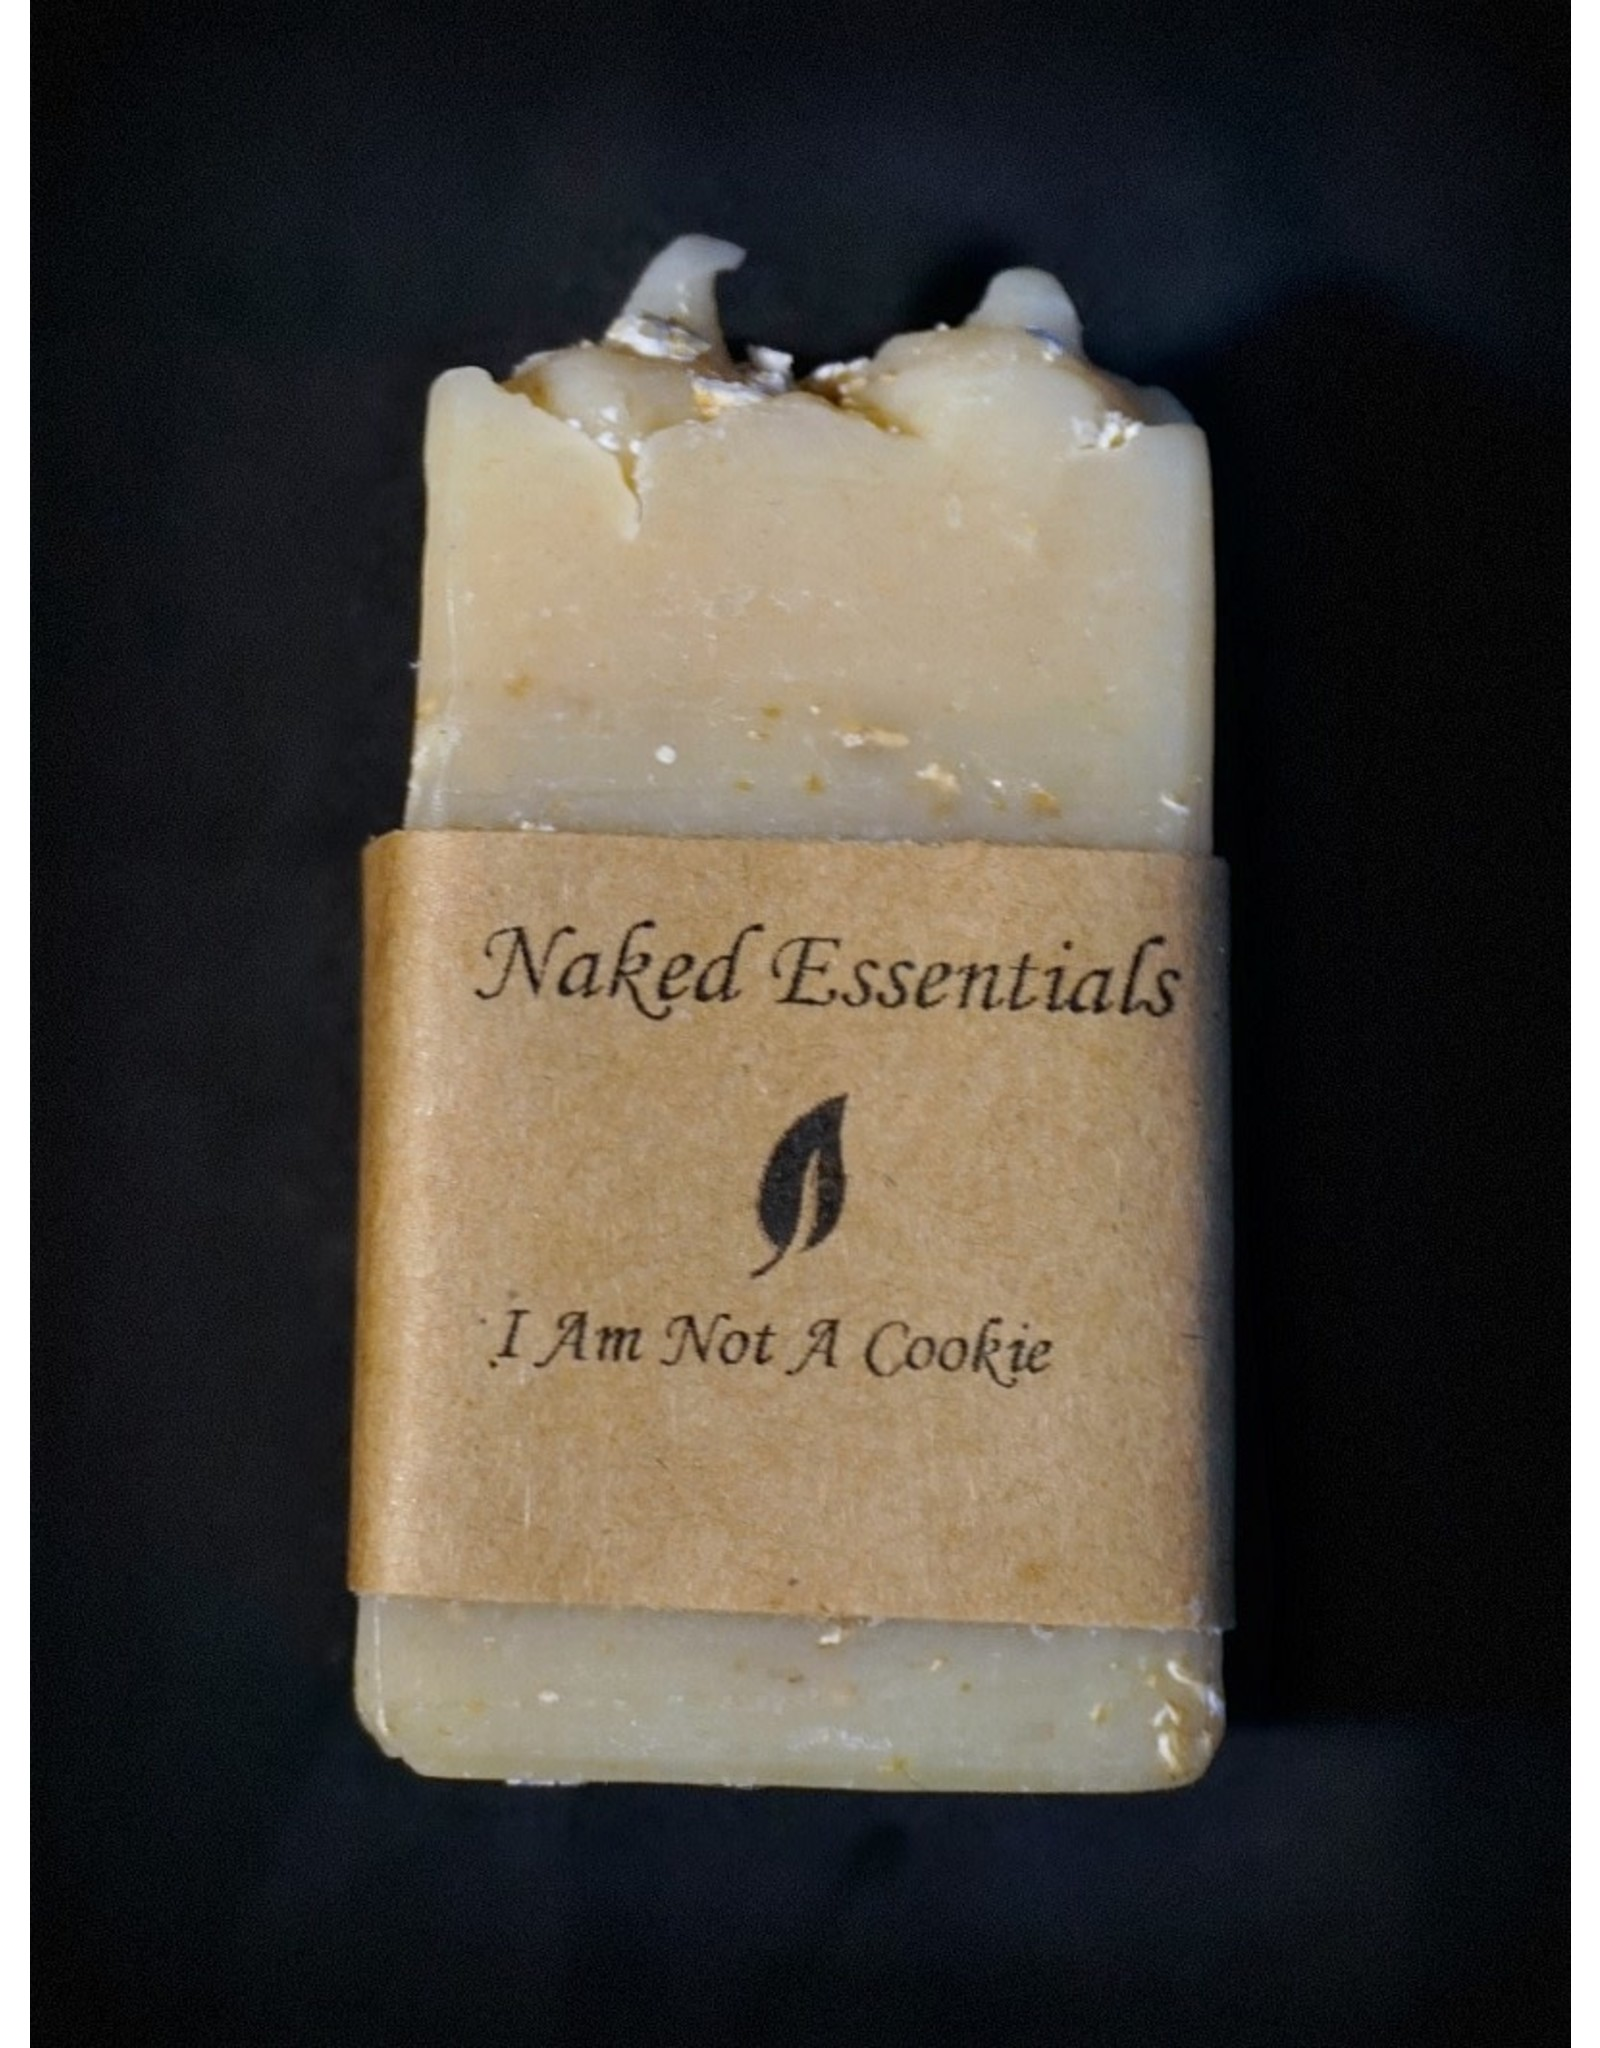 Naked Essentials – I Am Not A Cookie